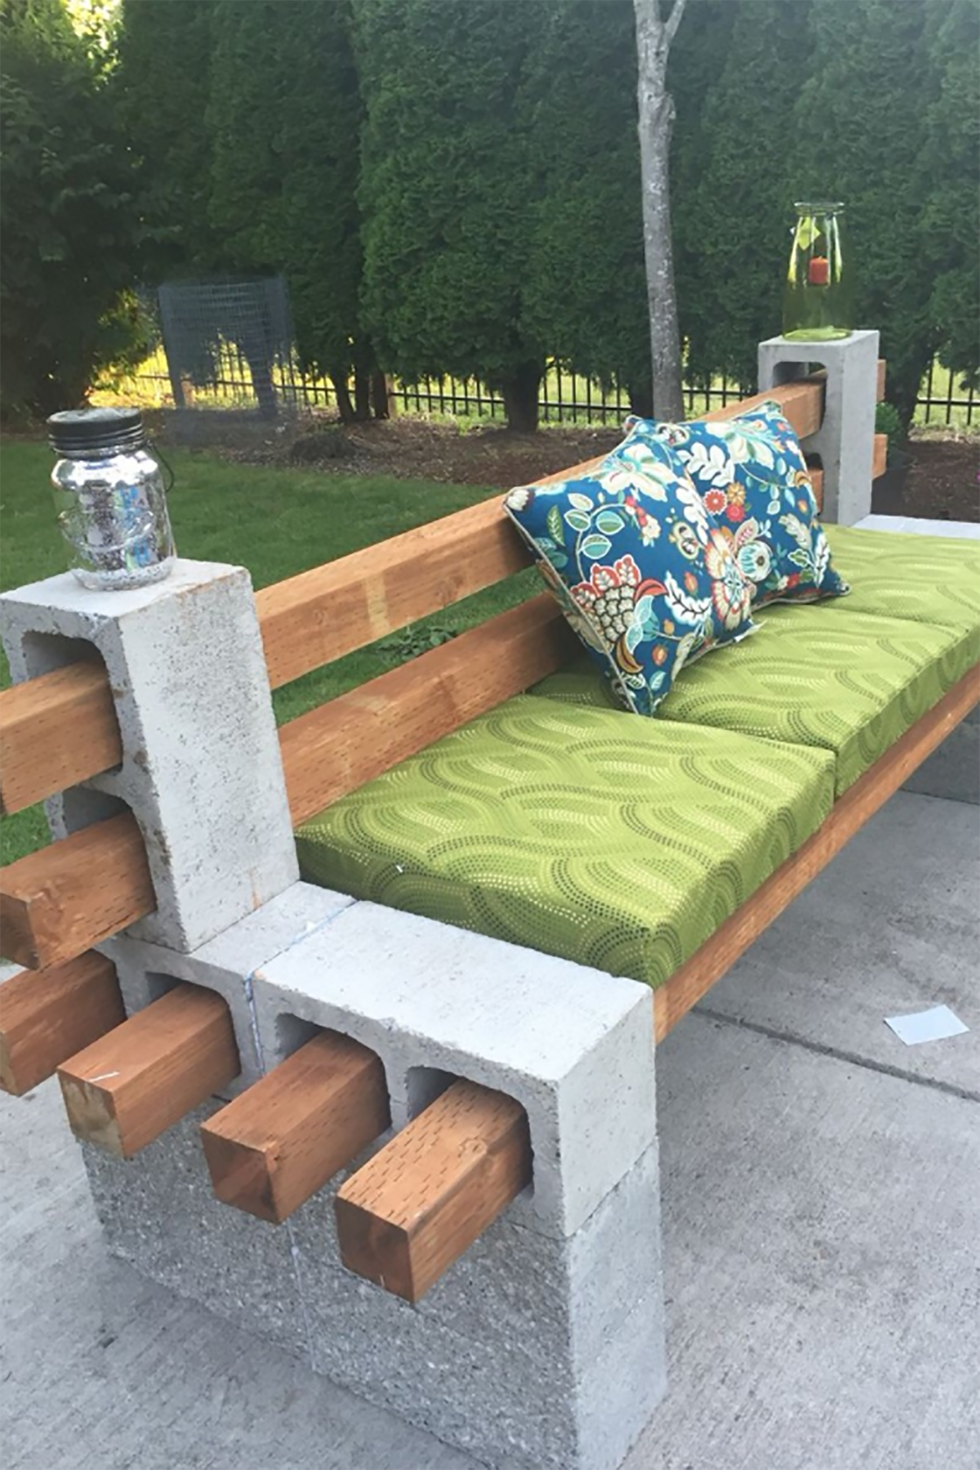 Photo of The Cool Thing People Are Doing With Cinder Blocks in Their Backyards